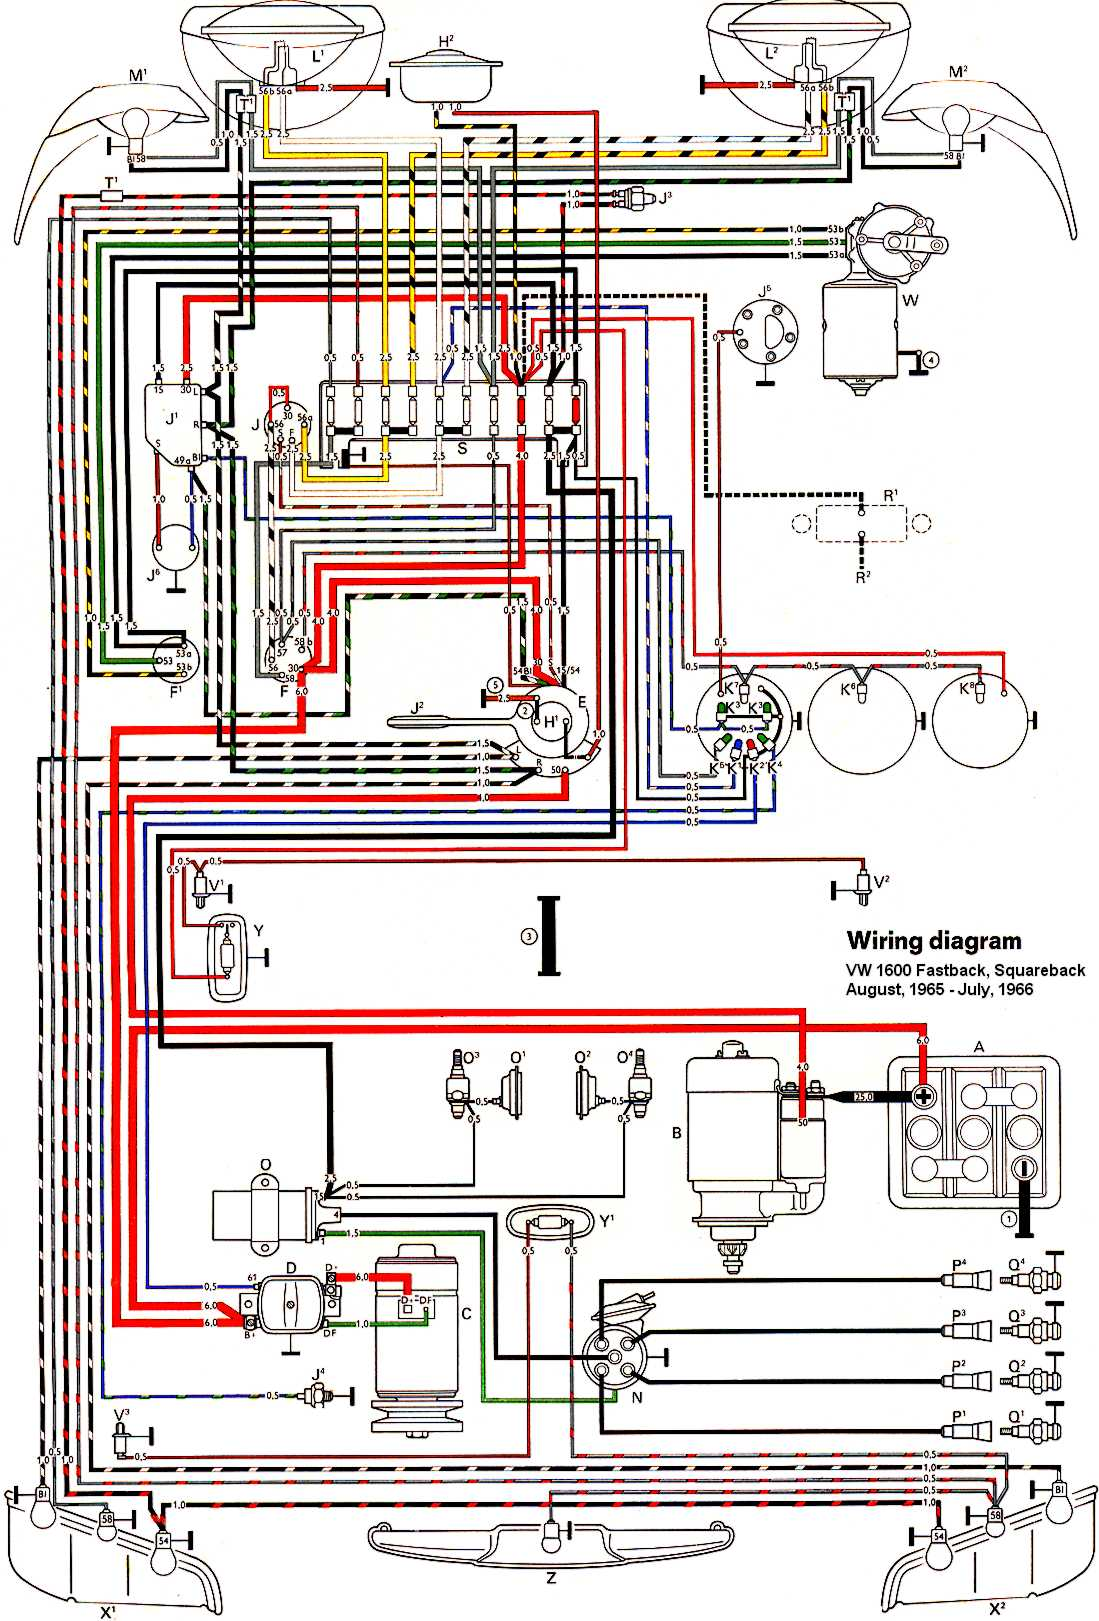 66 Vw Wiring Diagram Radio Schematics Diagrams Garmin Gps 2006c Thesamba Com Type 3 Rh 1962 Relay